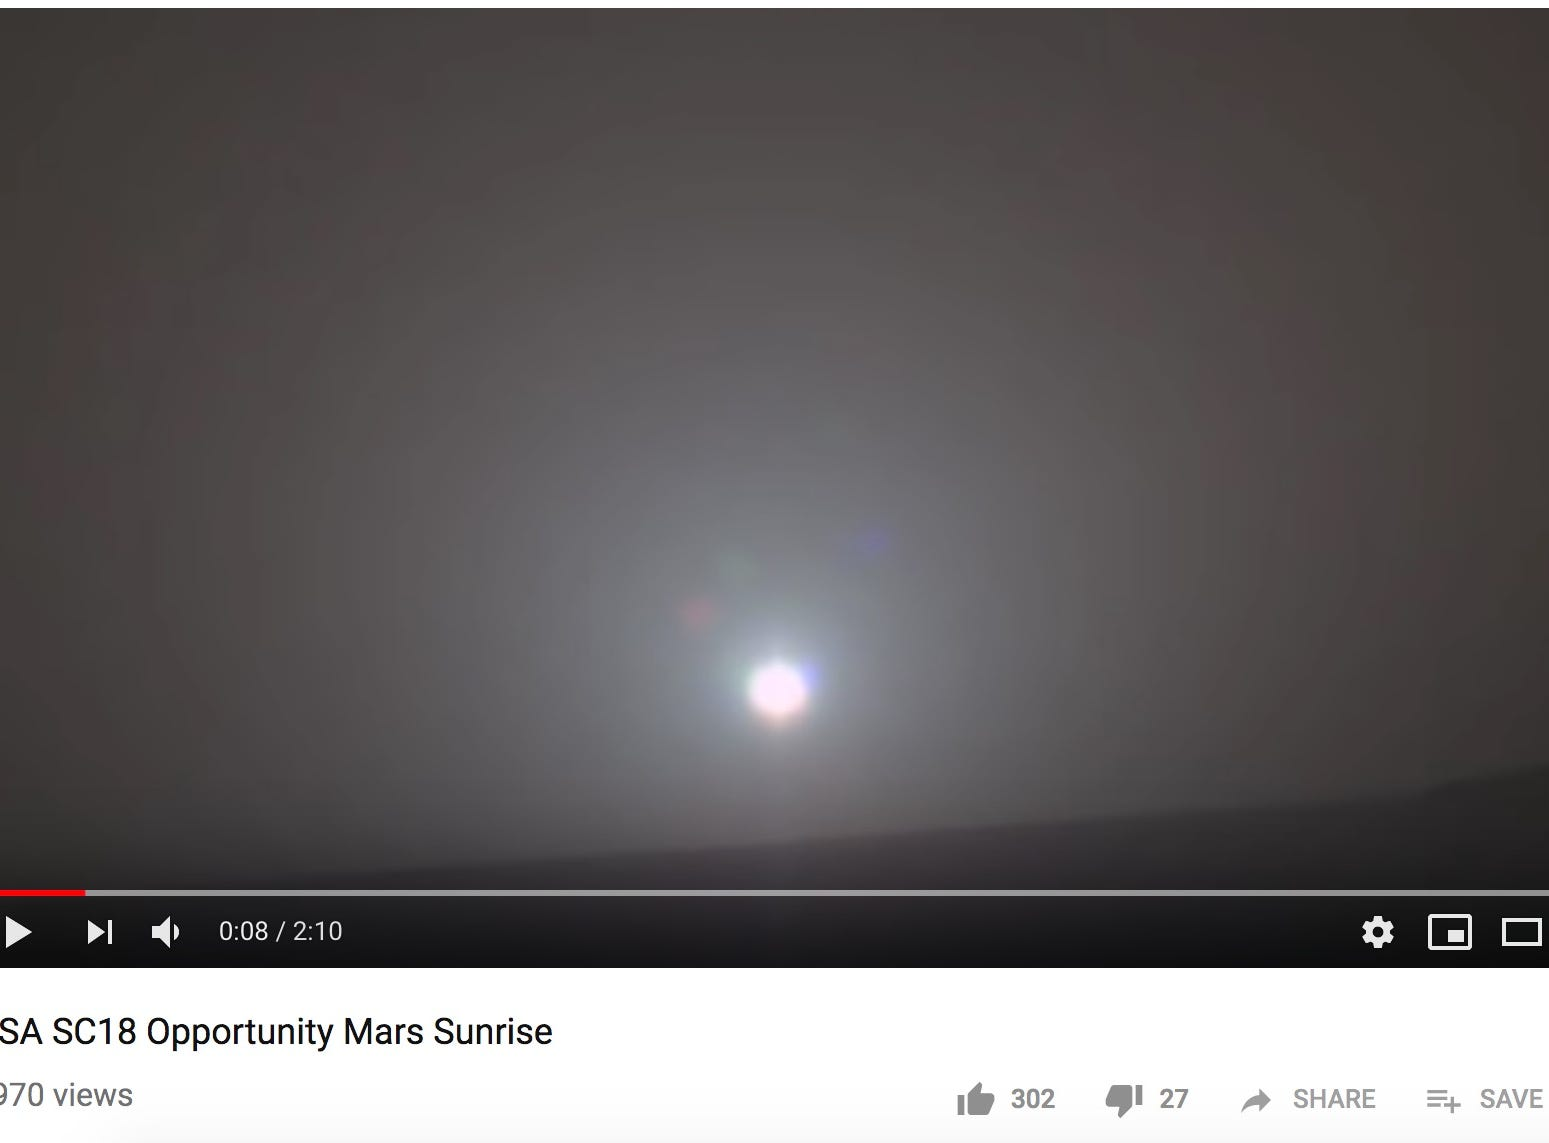 Scientists turned a Mars sunrise photo into music using data from NASA's Opportunity rover, and it's beautiful